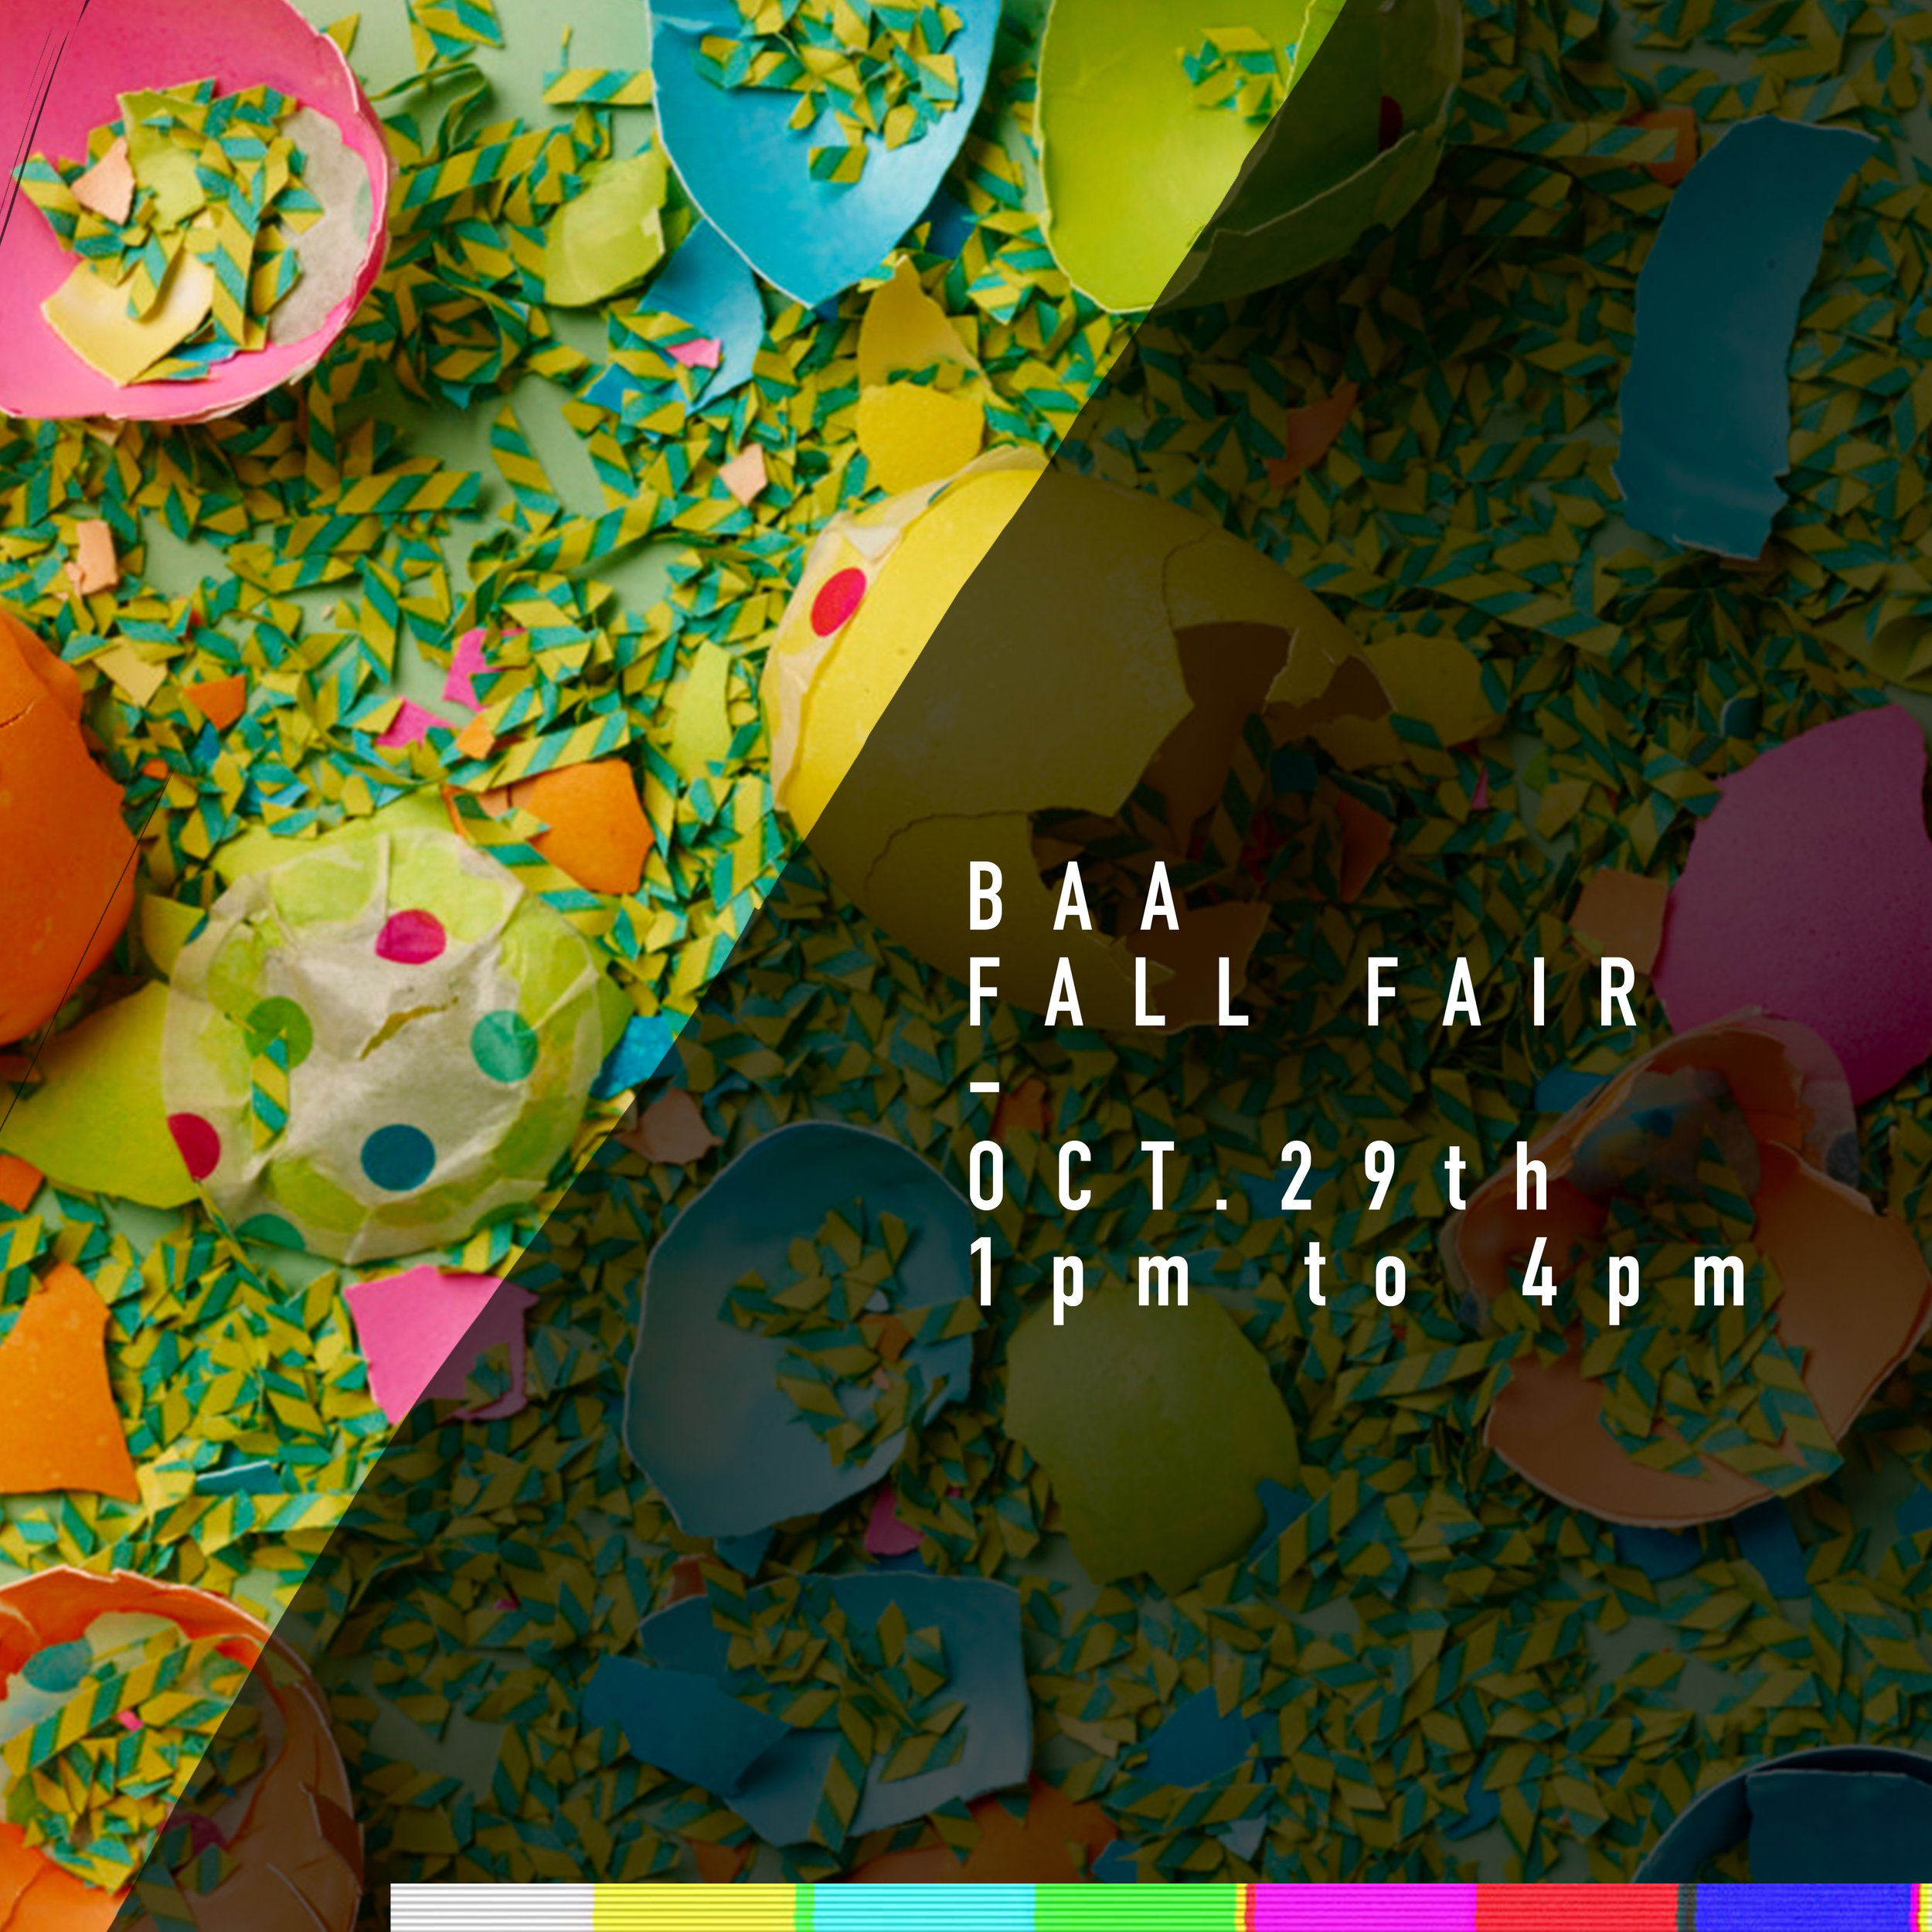 BAA FALL FAIR CALENDAR IMAGES.jpg